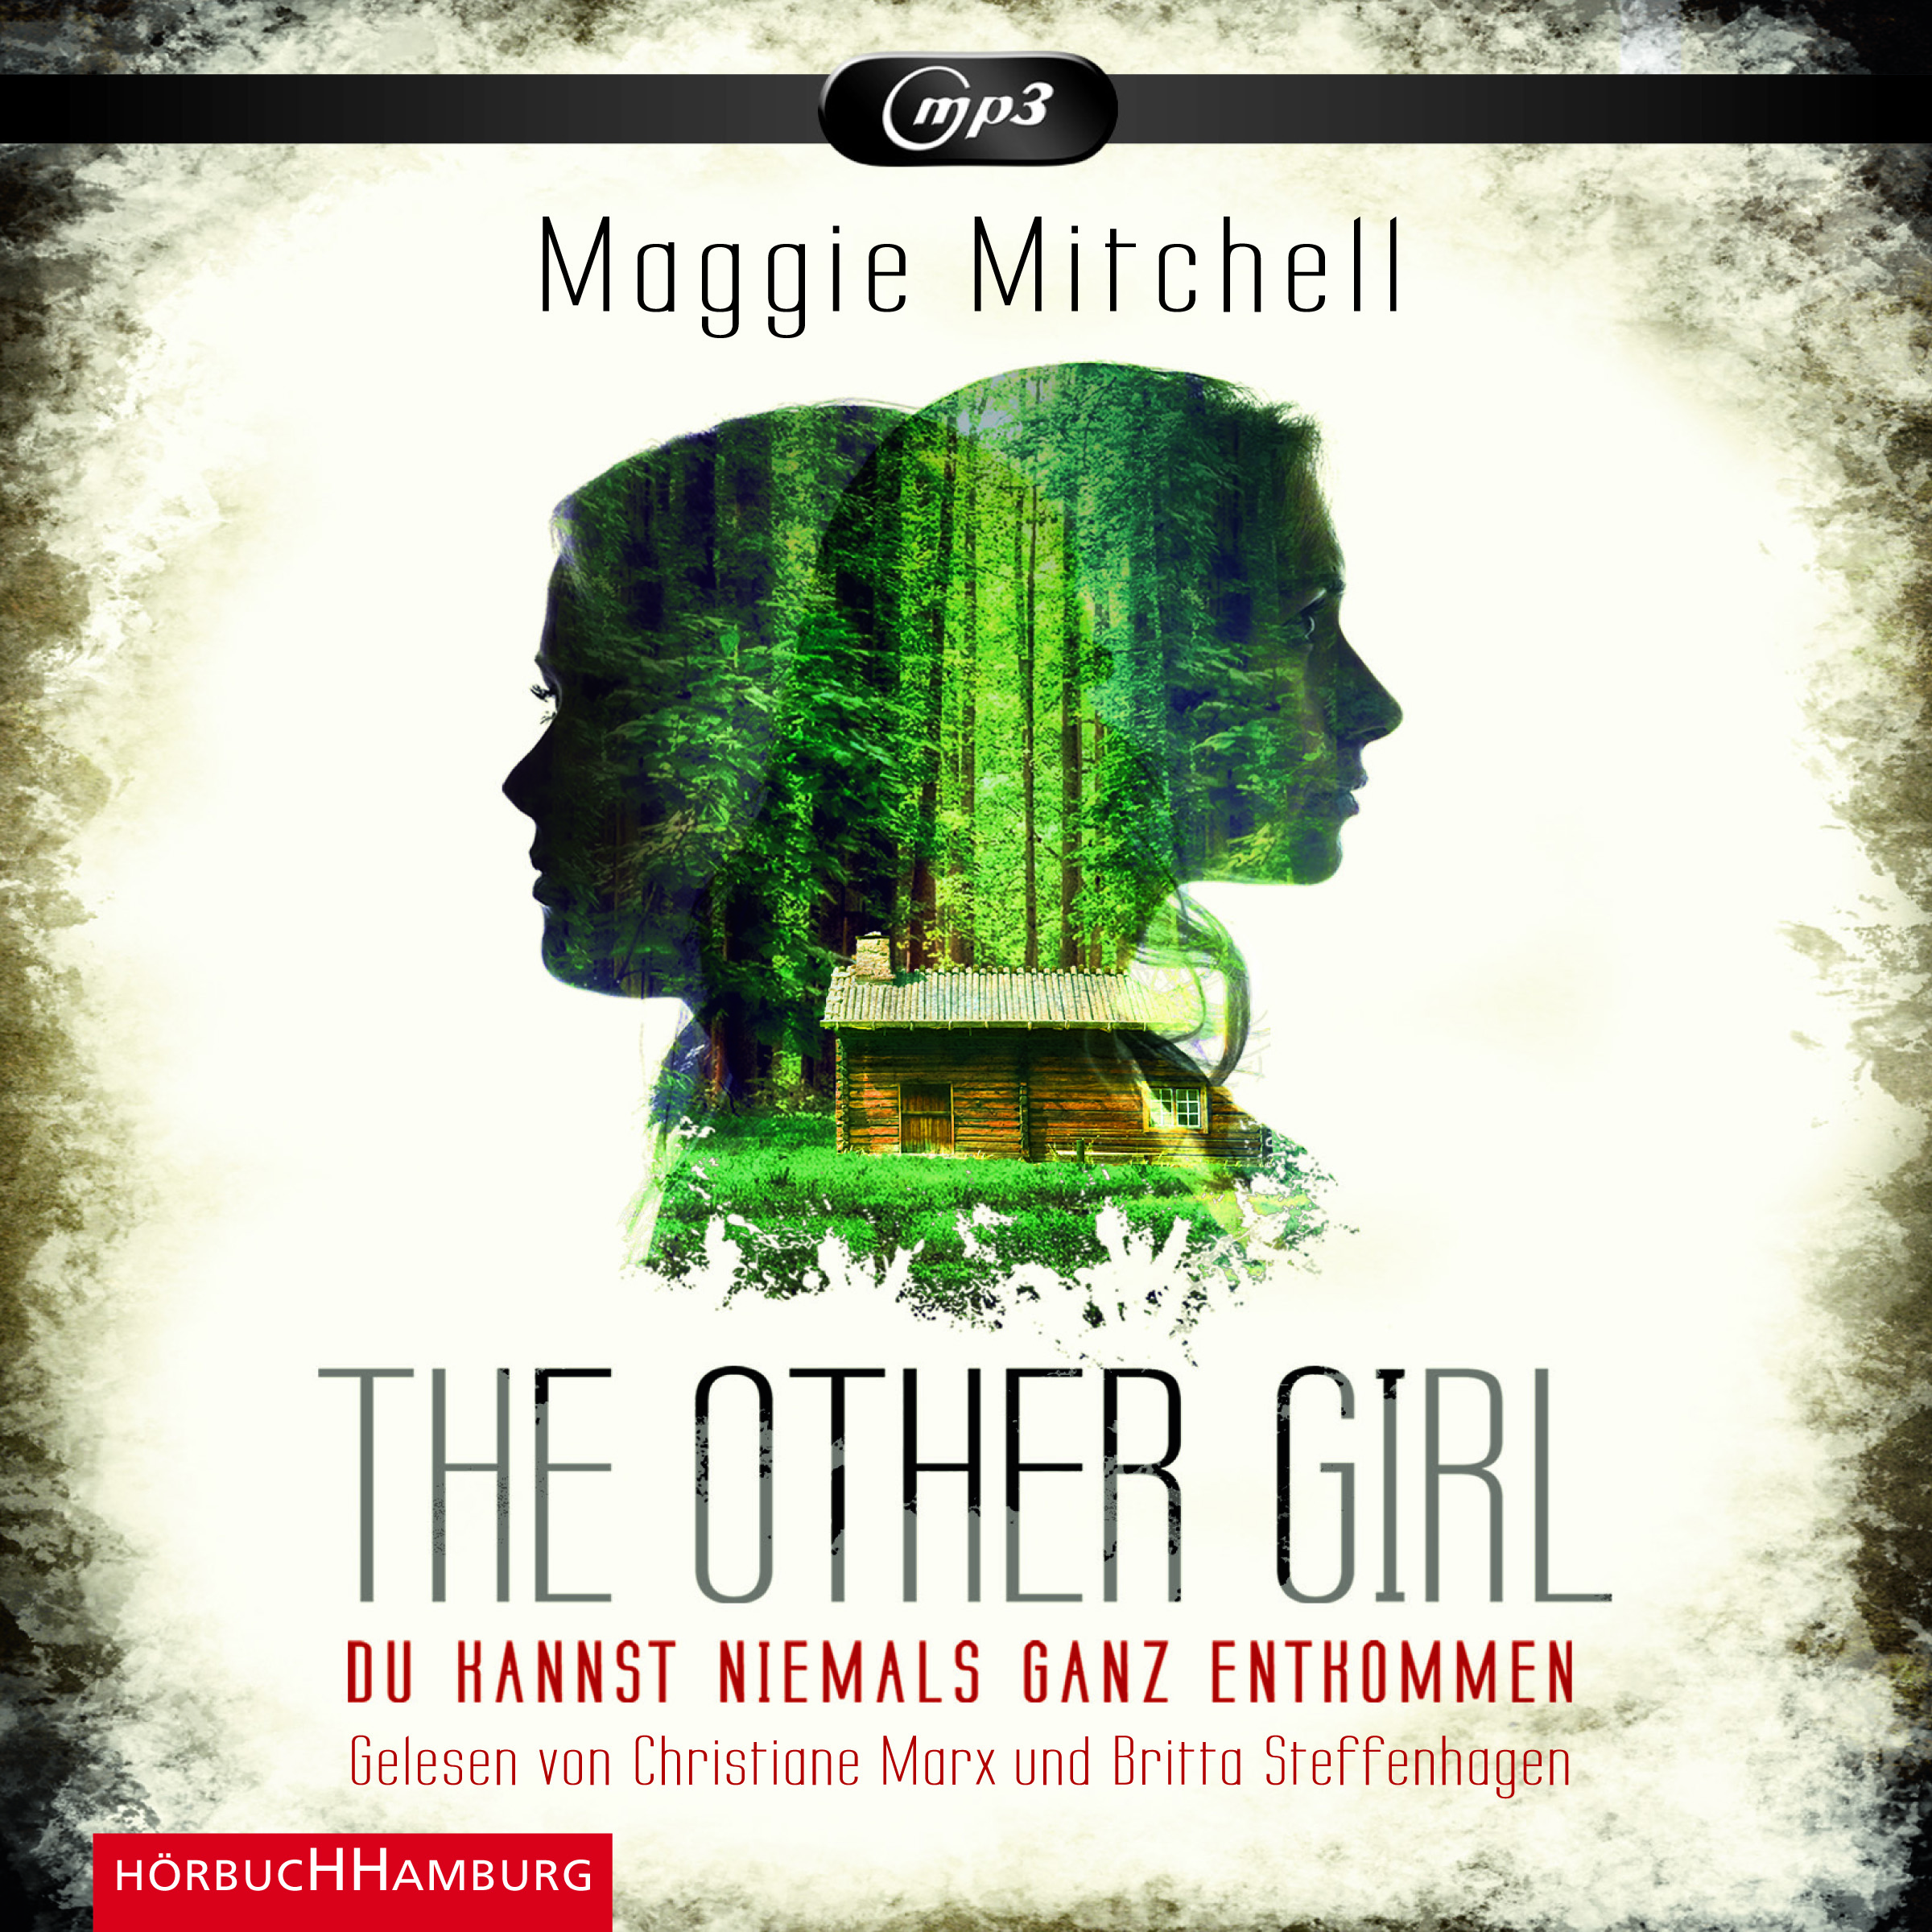 Cover für das The other Girl Hörbuch